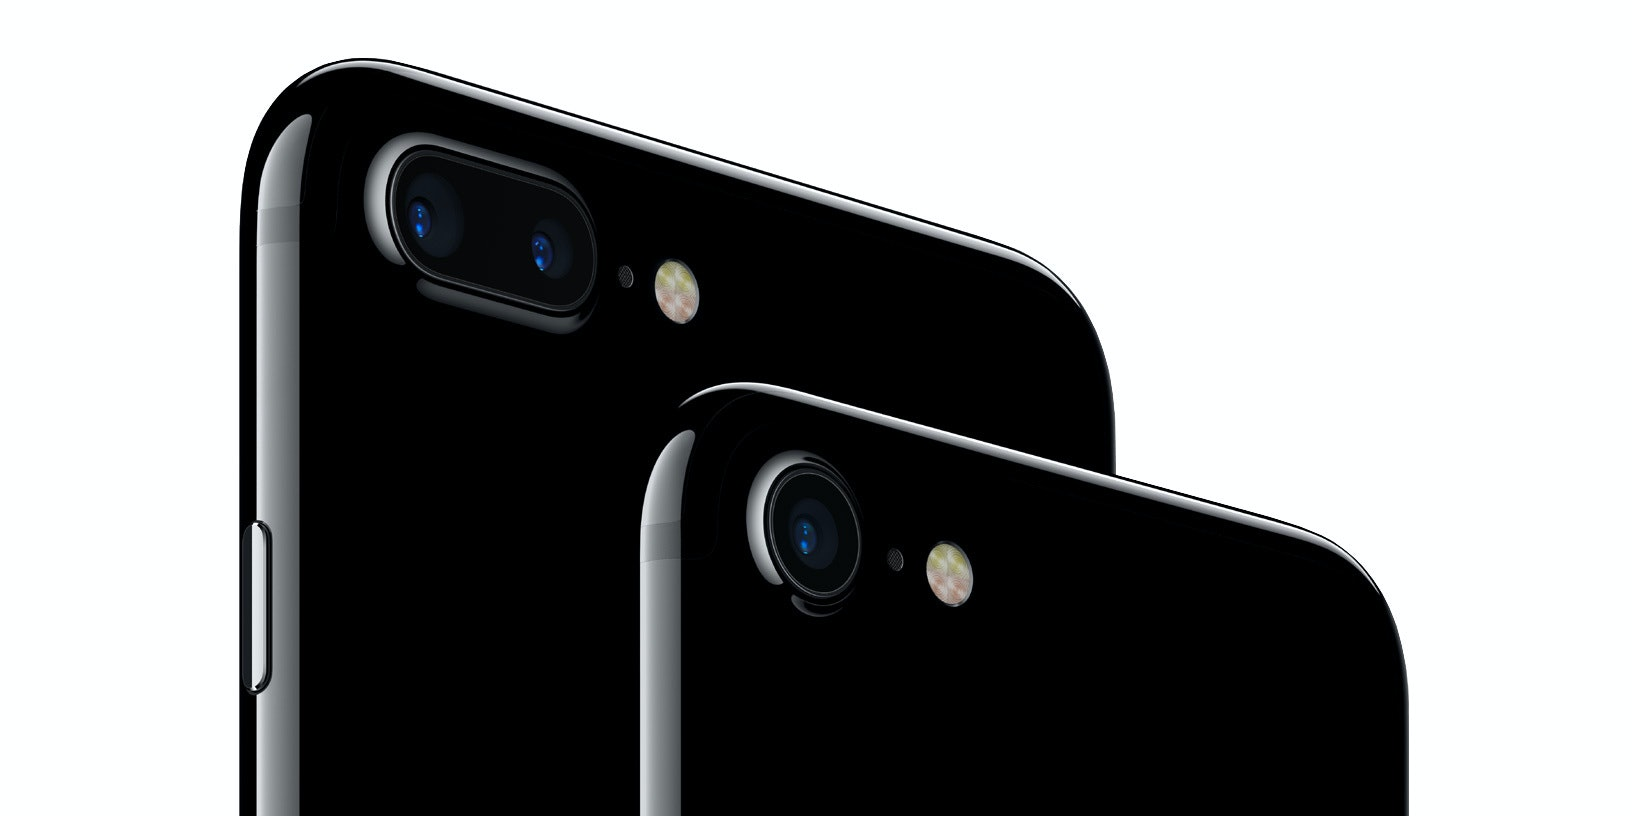 The iPhone 7 Plus in back, and the iPhone 7 in front.